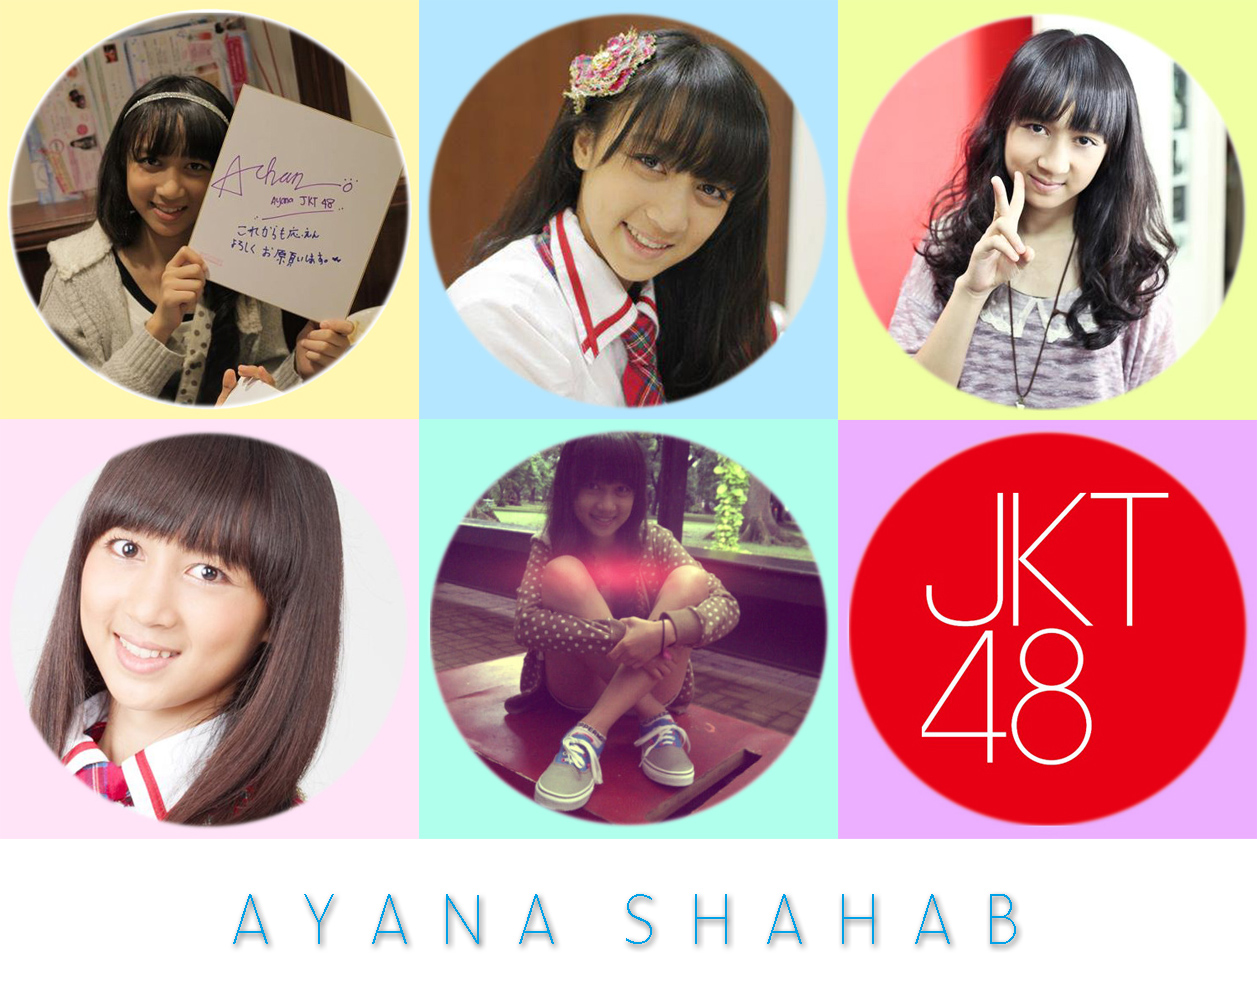 all new pix1  Wallpaper Cindy Gulla Jkt48